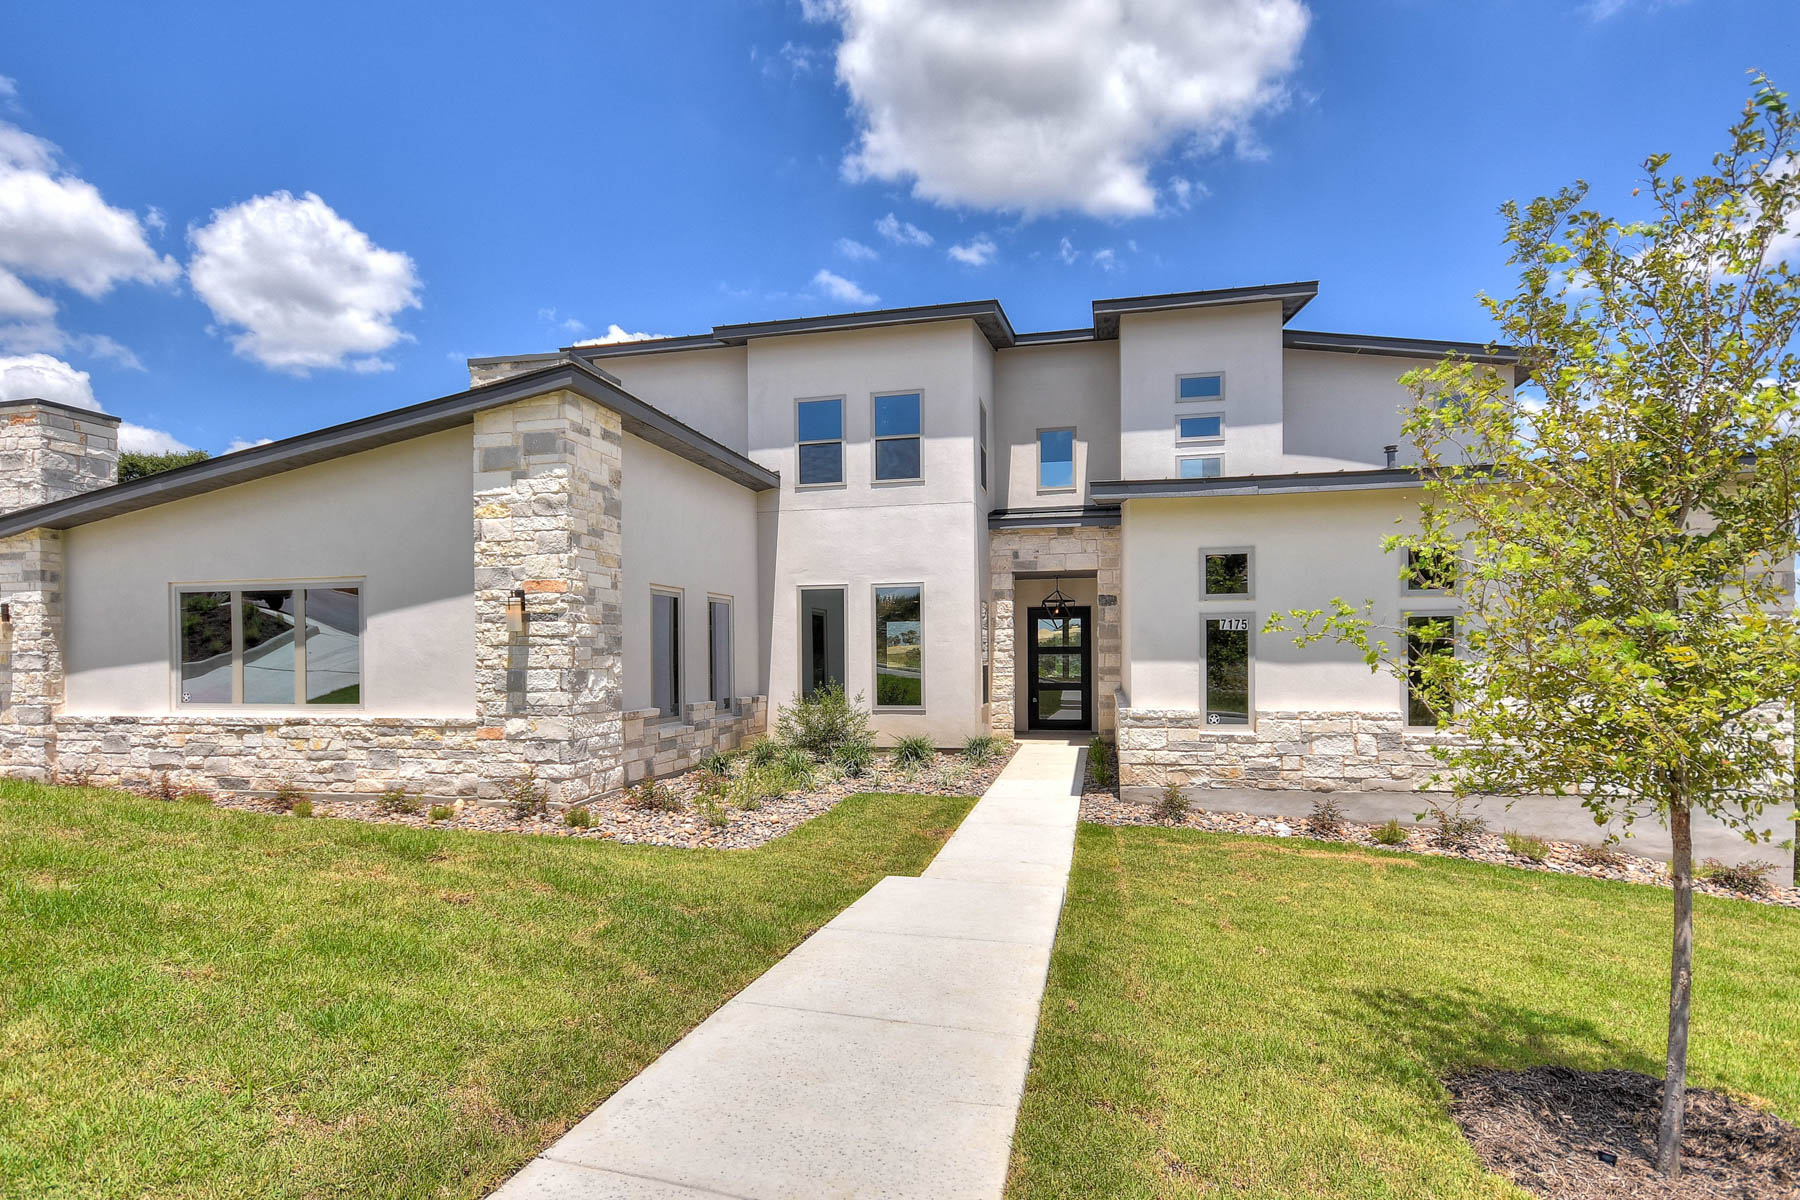 Additional photo for property listing at Magnificent Home in Cresta Bella 7175 Bella Garden San Antonio, Texas 78256 Estados Unidos